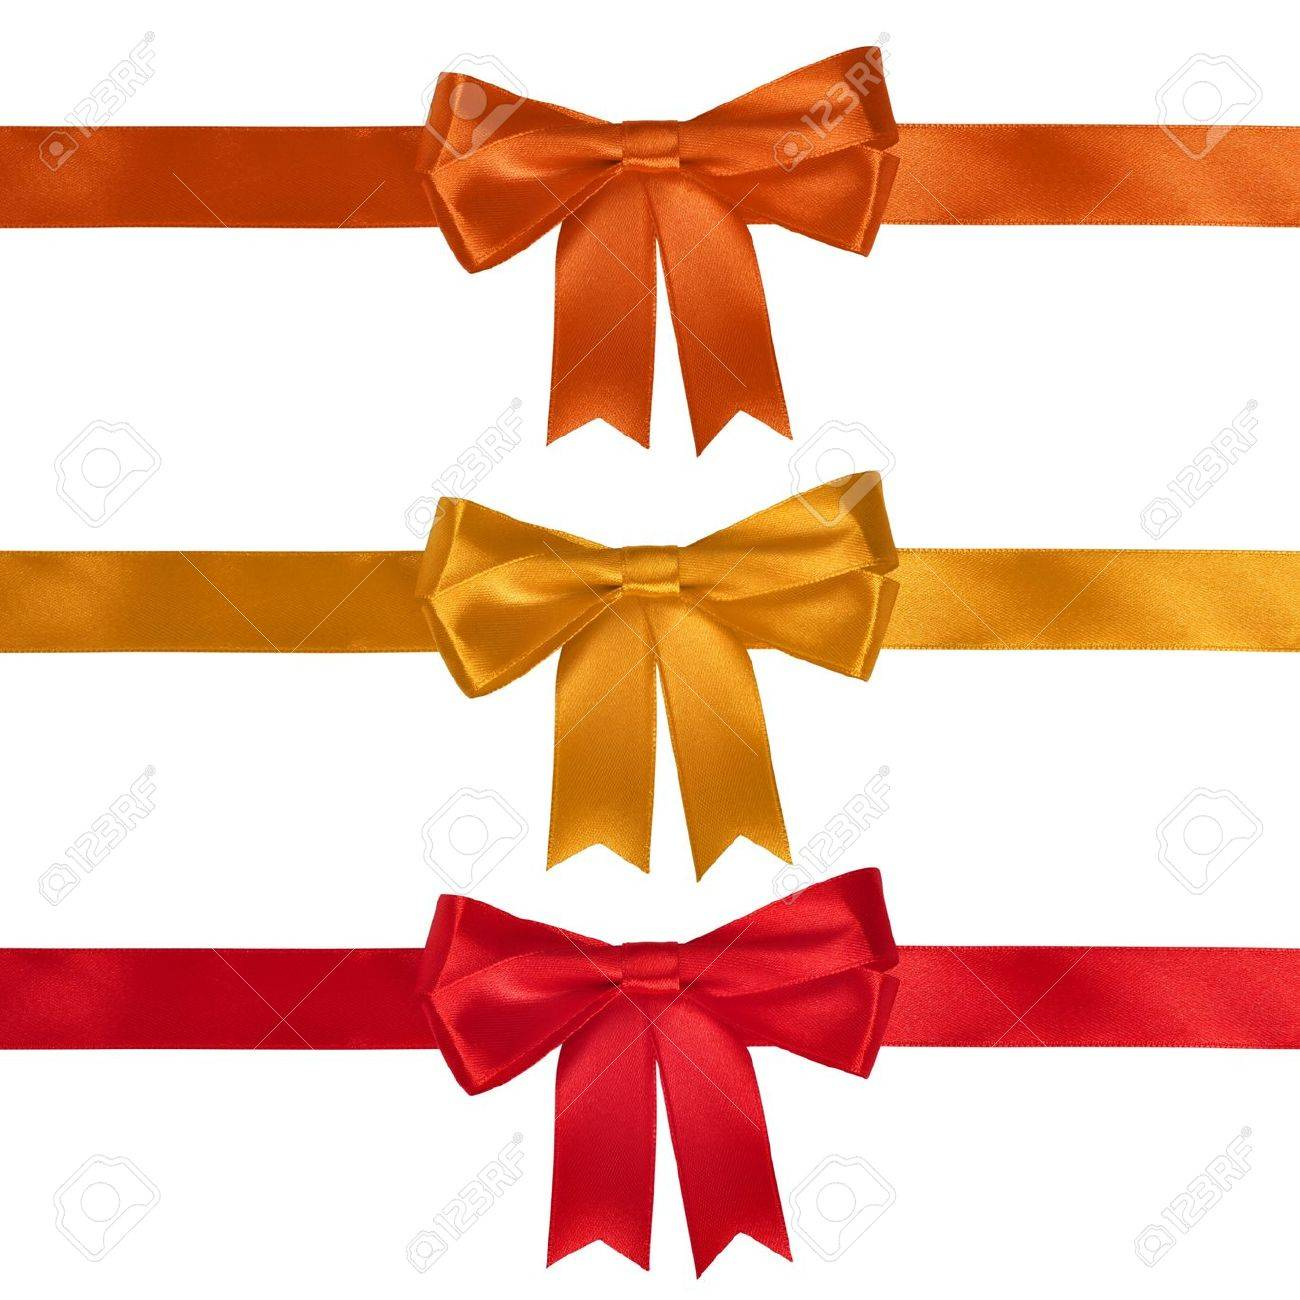 Red gift bows border with clipping path for easy background removing - Red Bow Set Of Ribbon Bows Red Yellow Orange On White Background